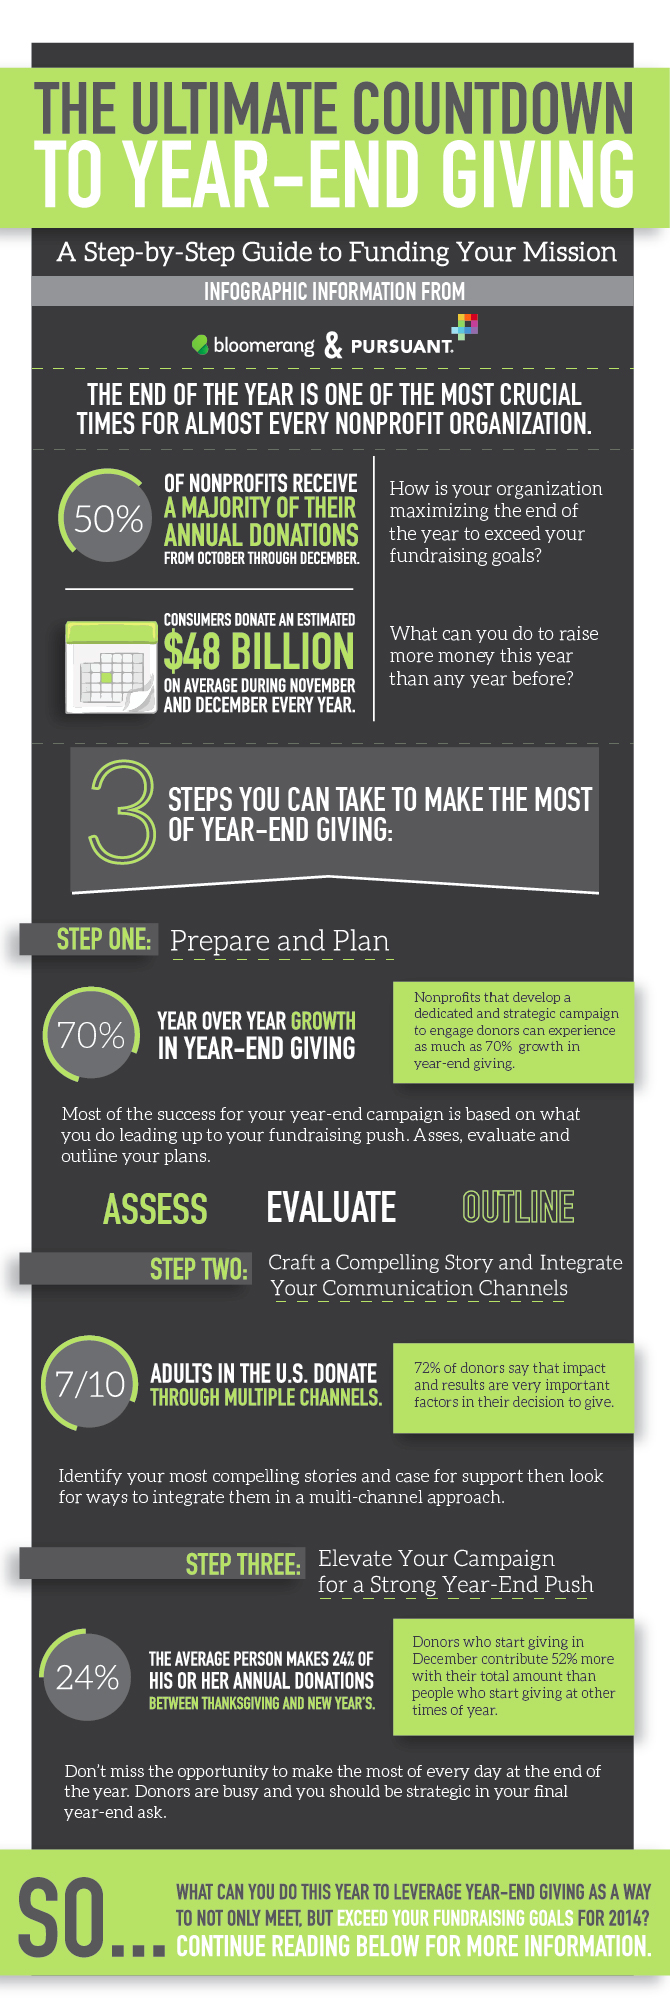 A Step by Step Guide to Year End Giving [Infographic] image Year End Infographic final670.png